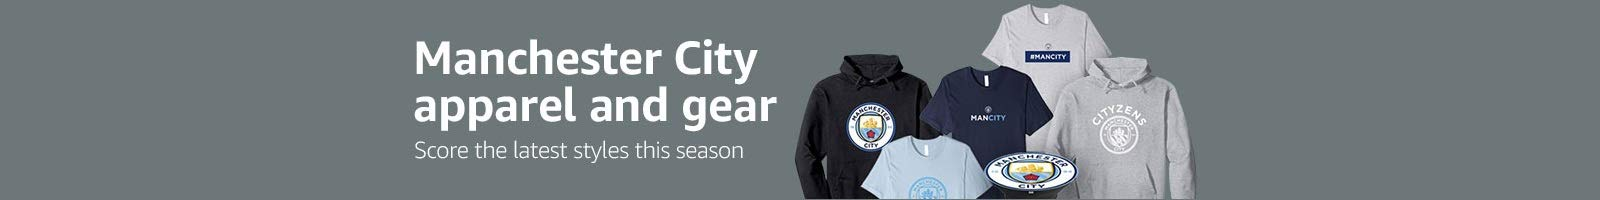 Manchester City apparel and gear